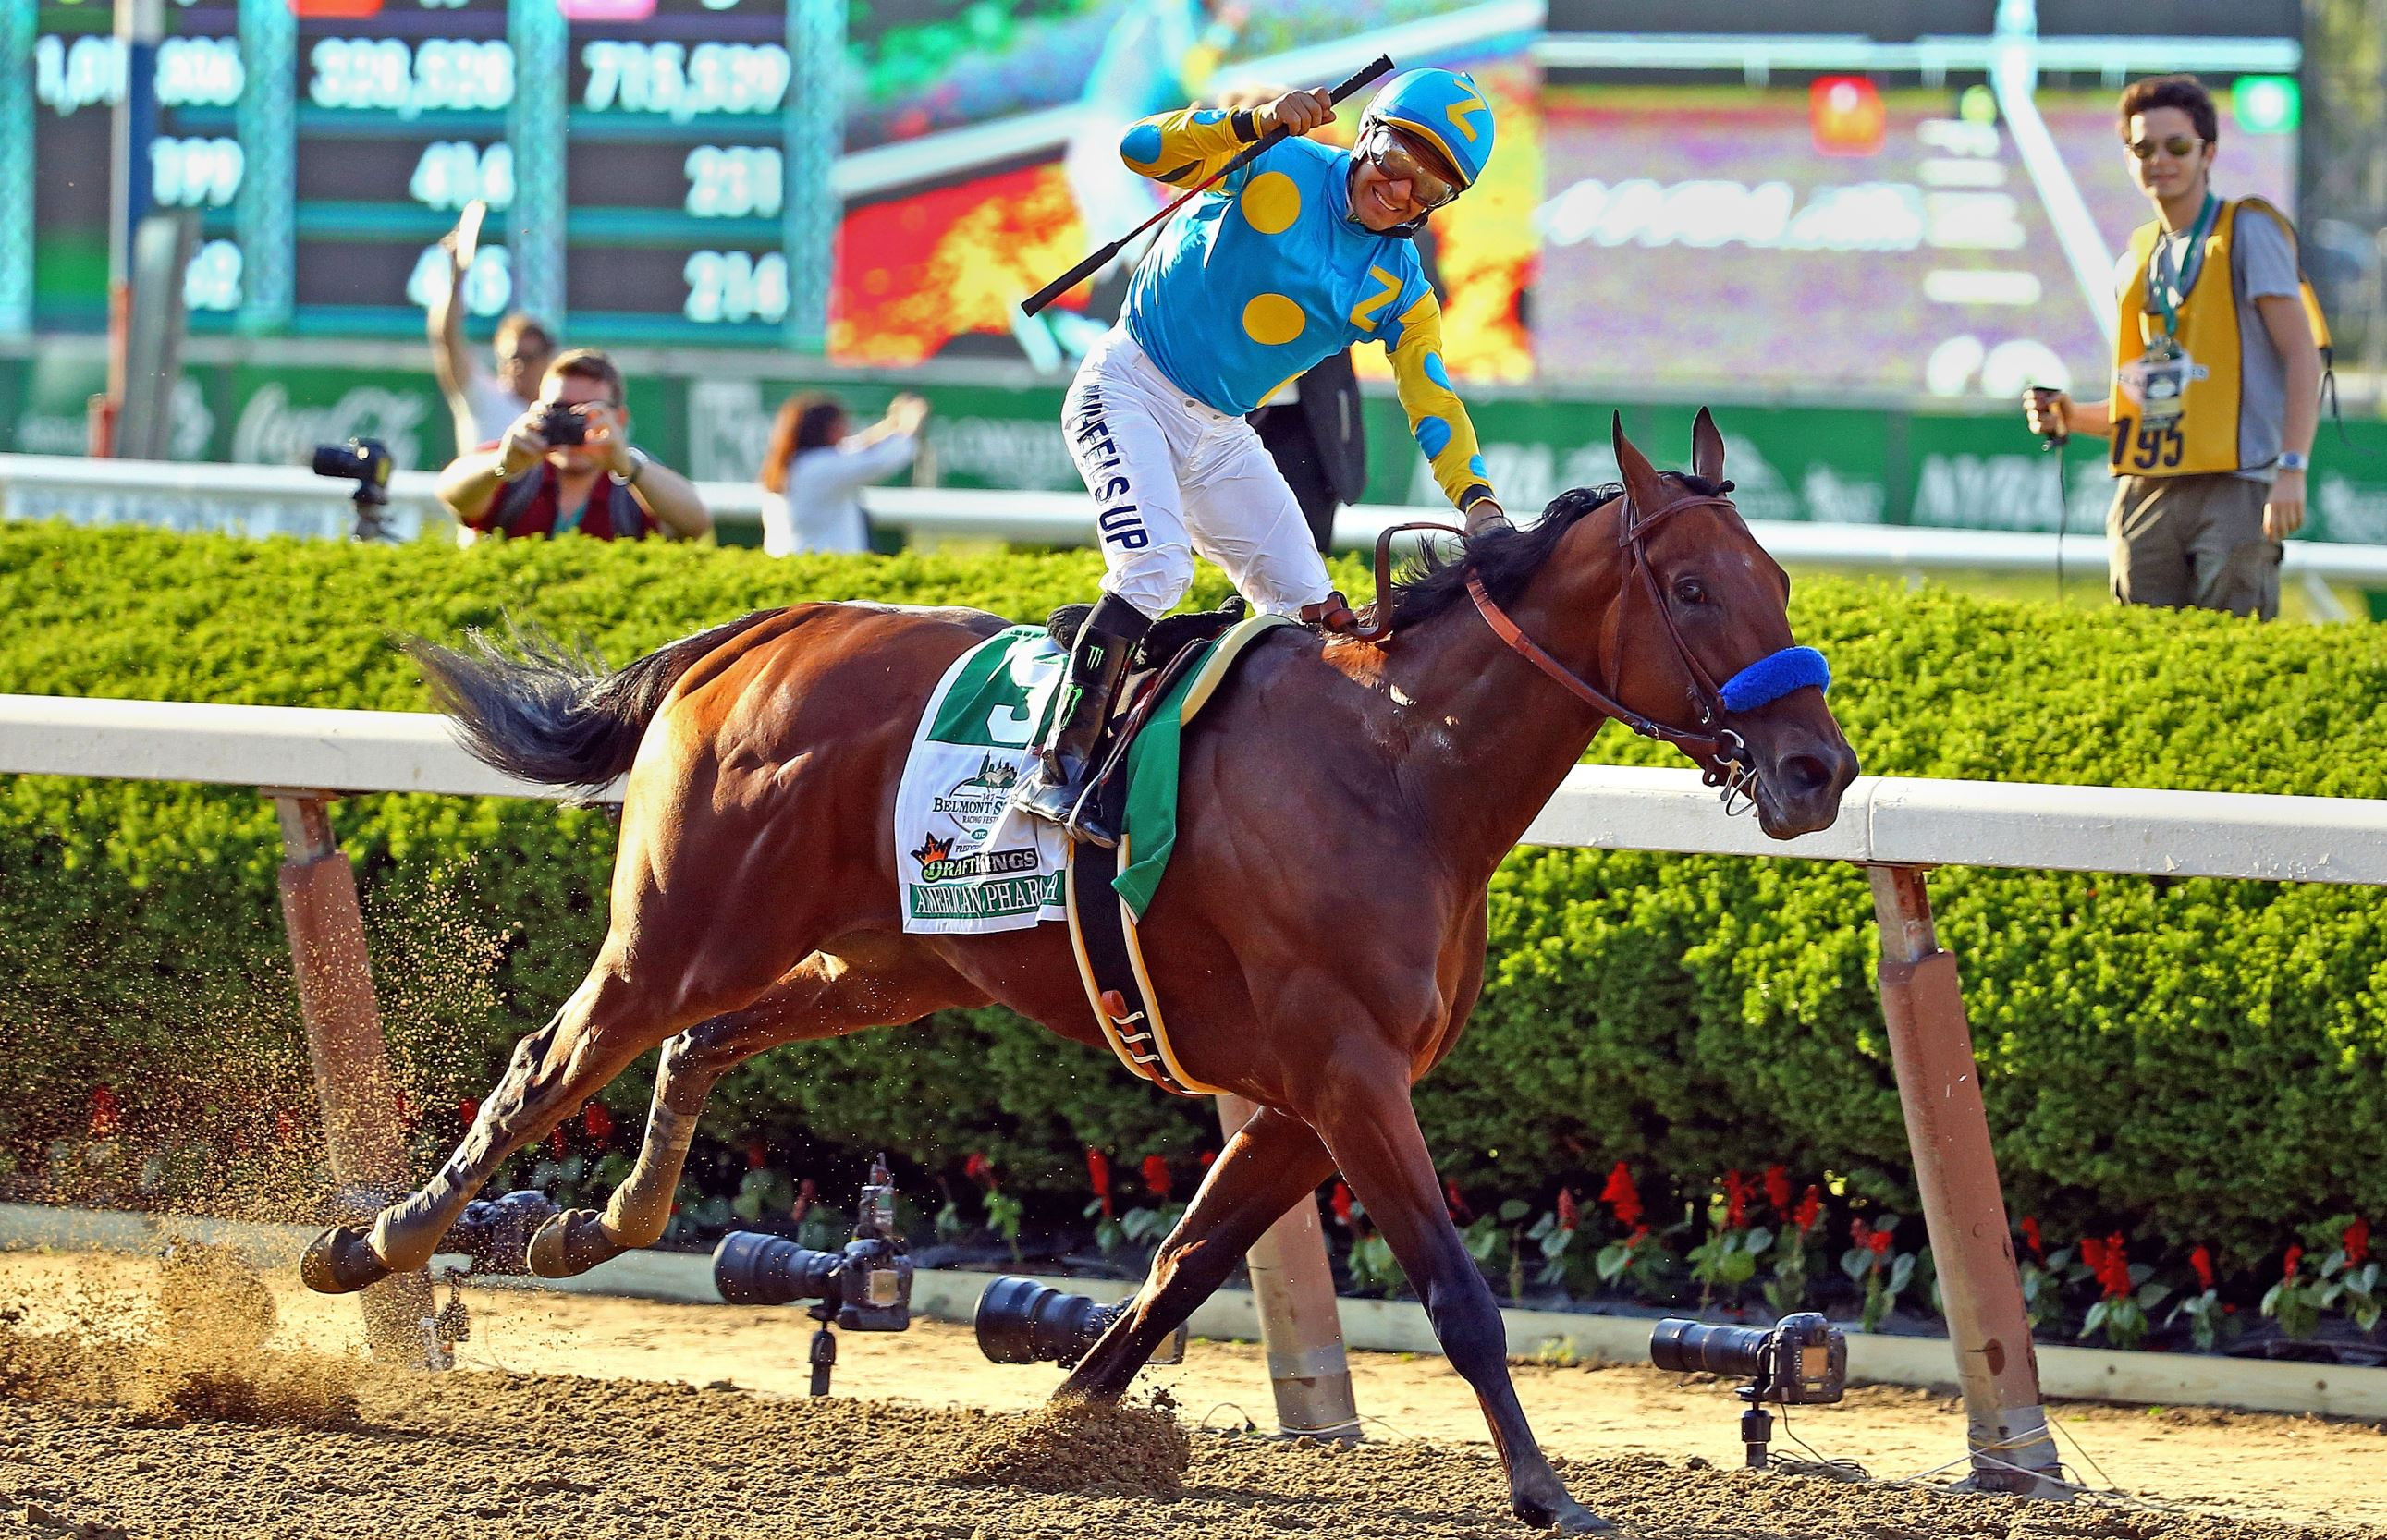 Victor Espinoza celebrates atop American Pharoah after winning the 147th running of the Belmont Stakes at Belmont Park on June 6, 2015 in Elmont, New York. With the win American Pharoah becomes the first horse to win the Triple Crown in 37 years.